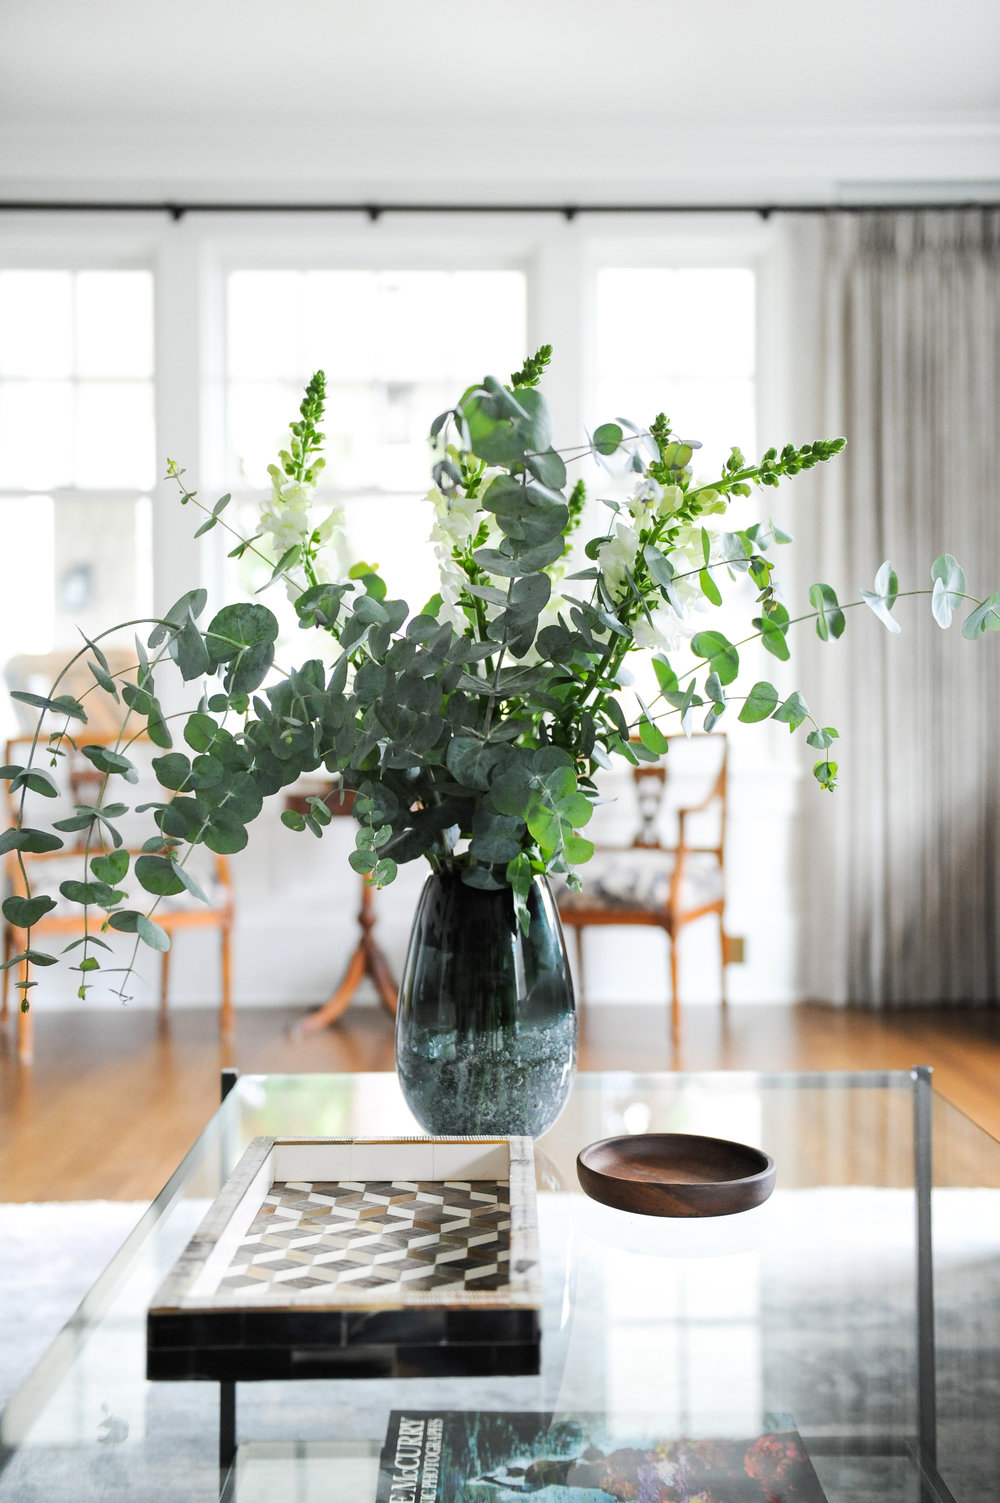 A vase with green plants, a wooden tray and a wooden ashtray sit on a glass coffee table.